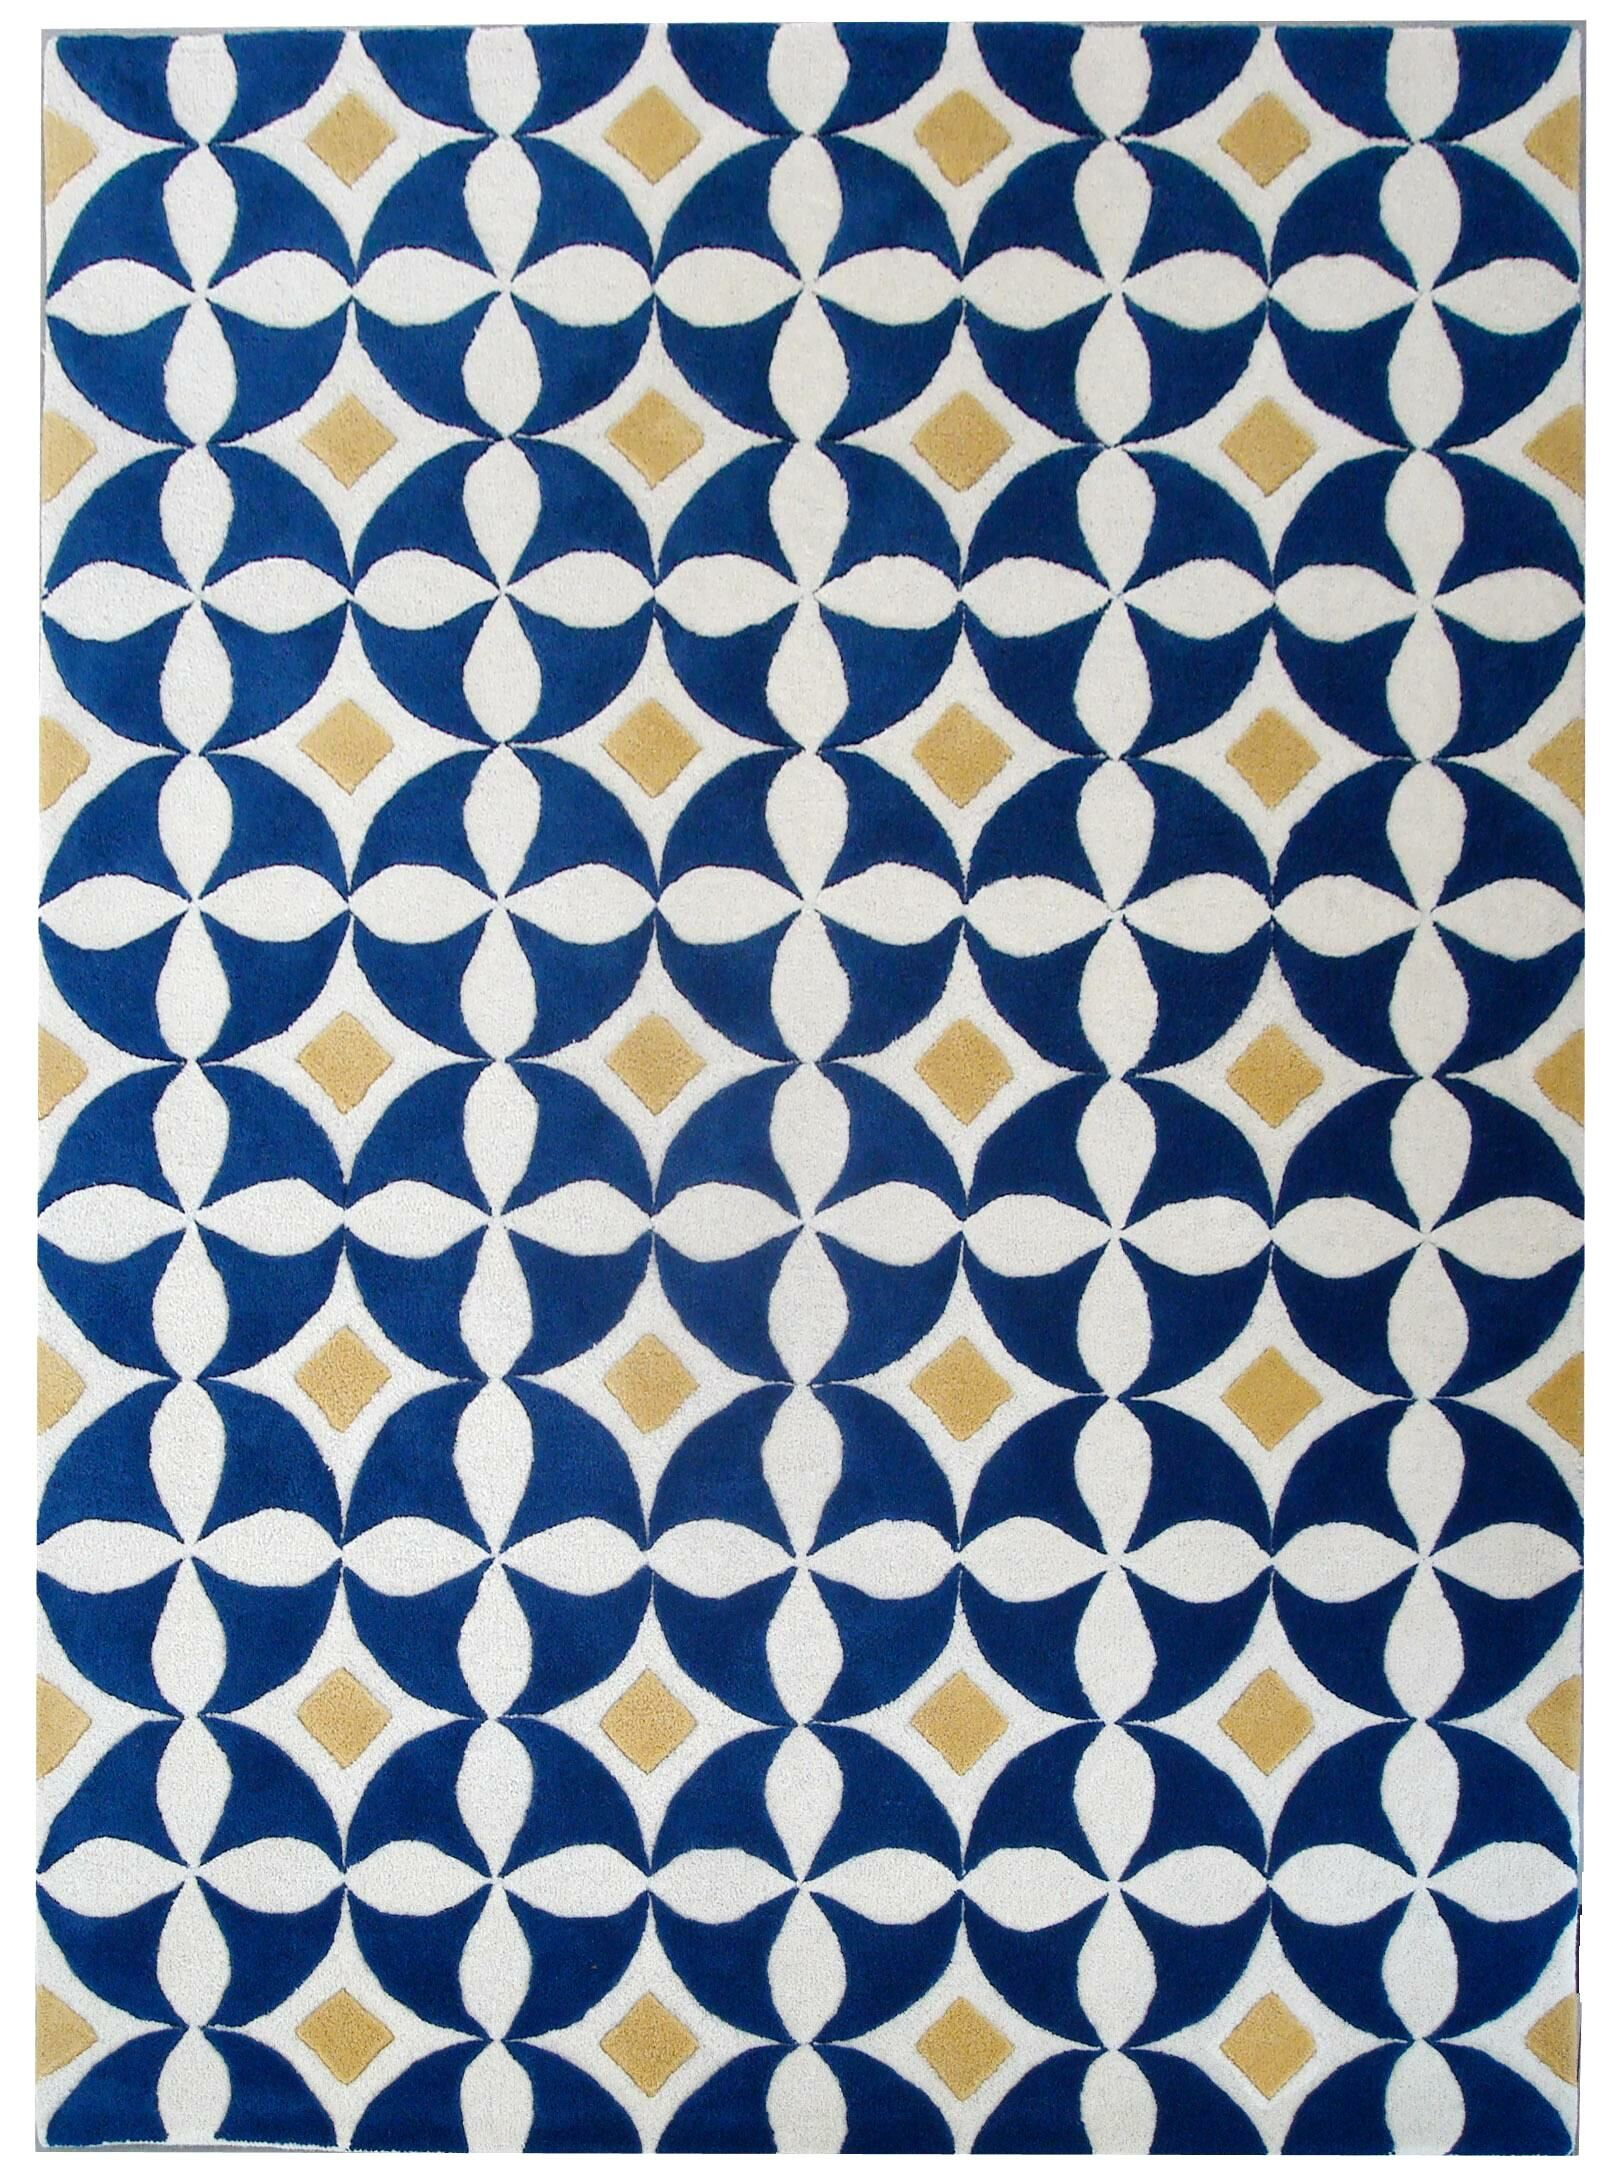 Bayswater Ivory /Blue Area Rug Rug Size: Rectangle 5' x 8'